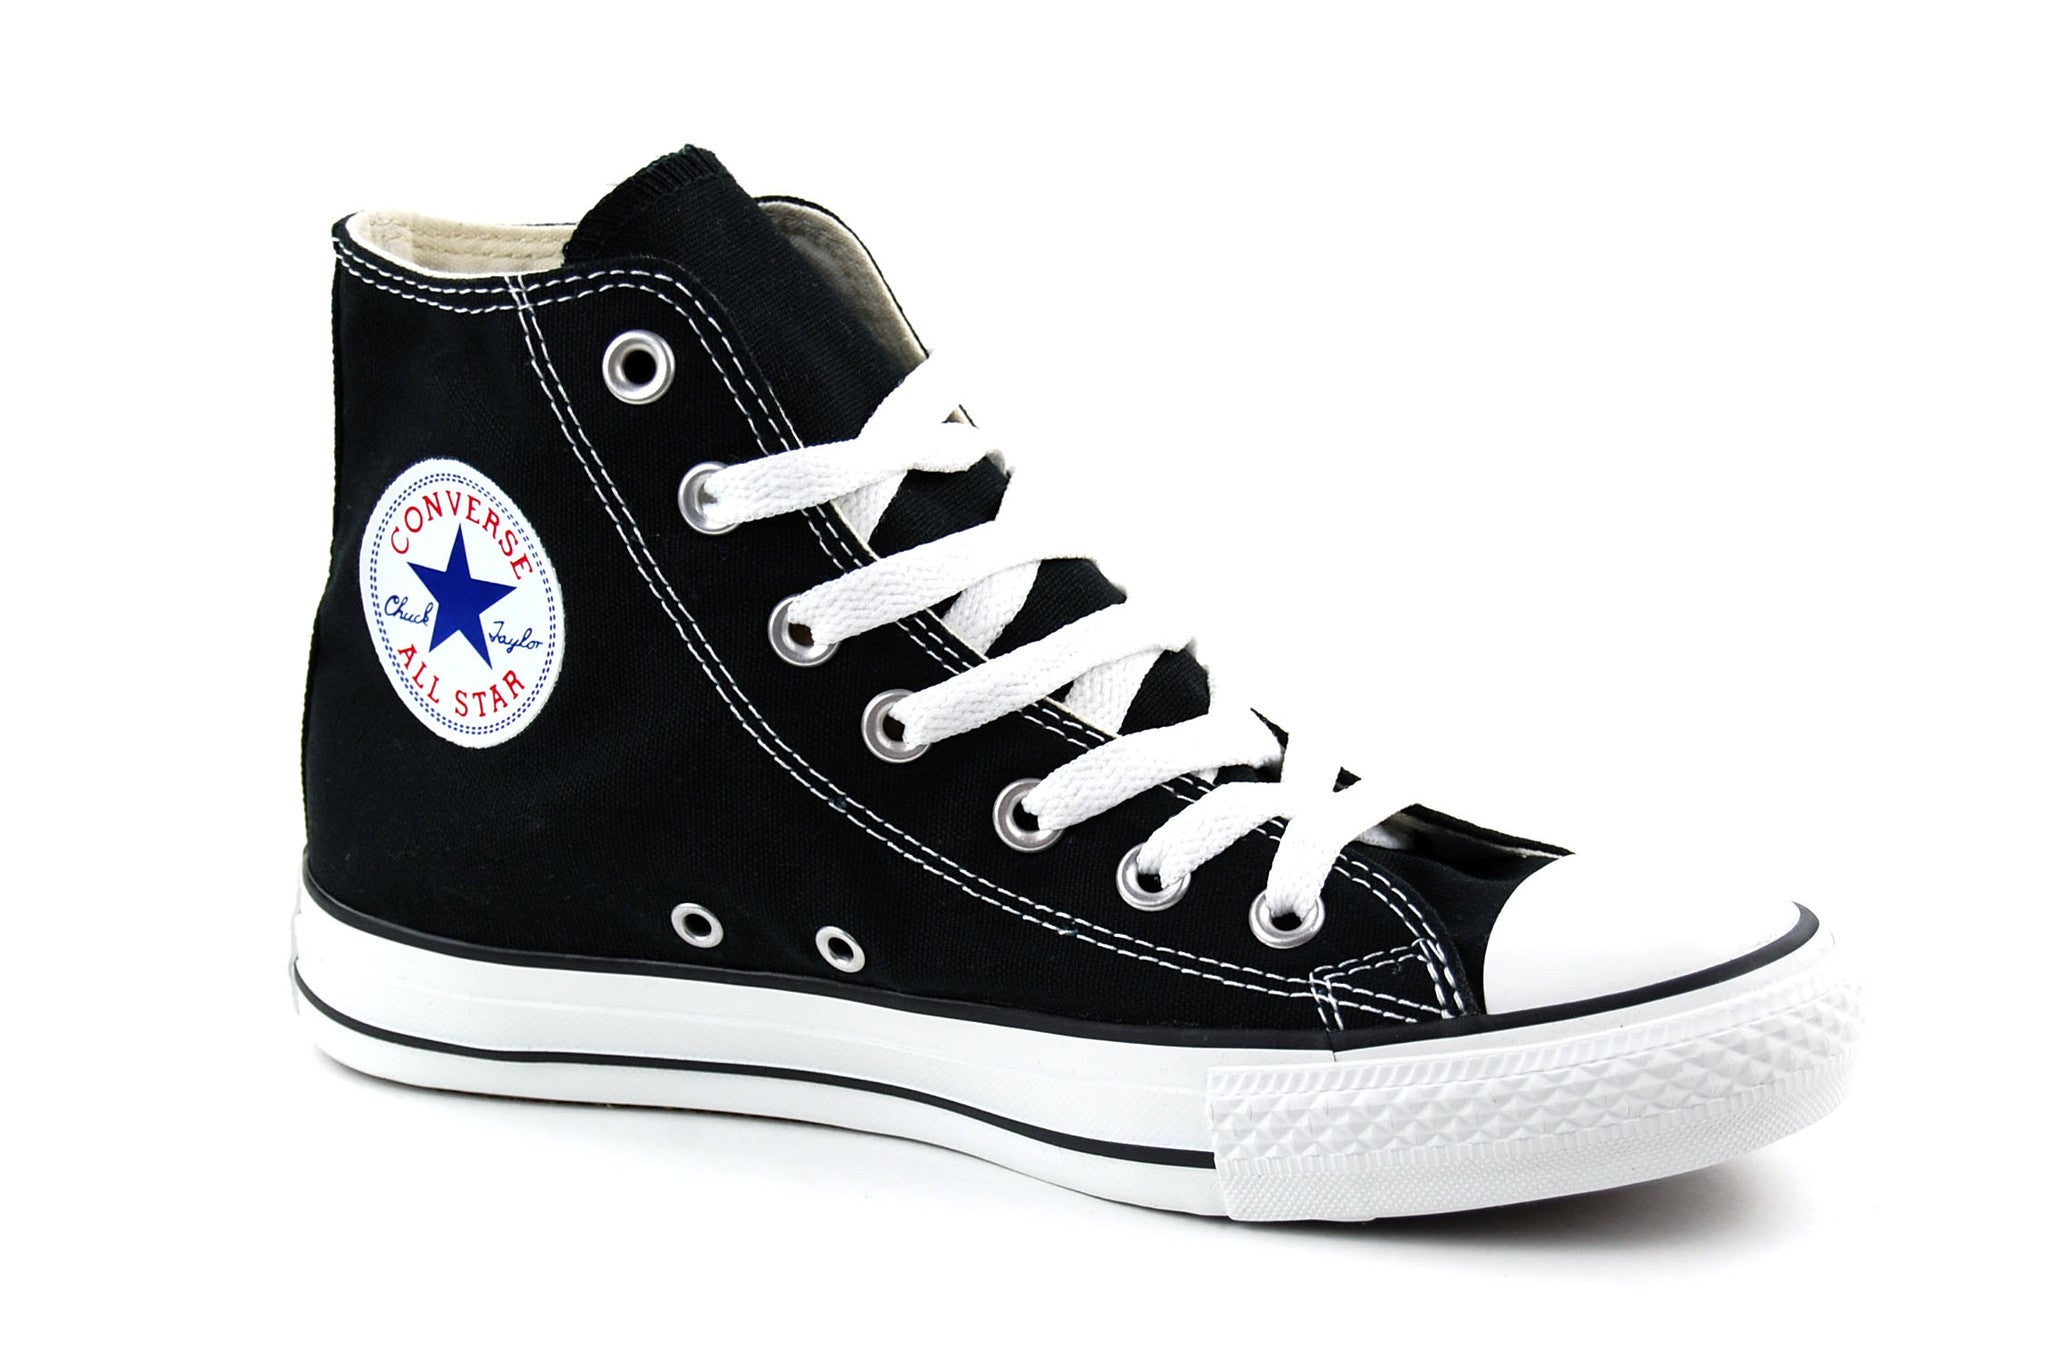 2aefb8d60230e Converse Unisex Black Chuck Taylor All Star High Top